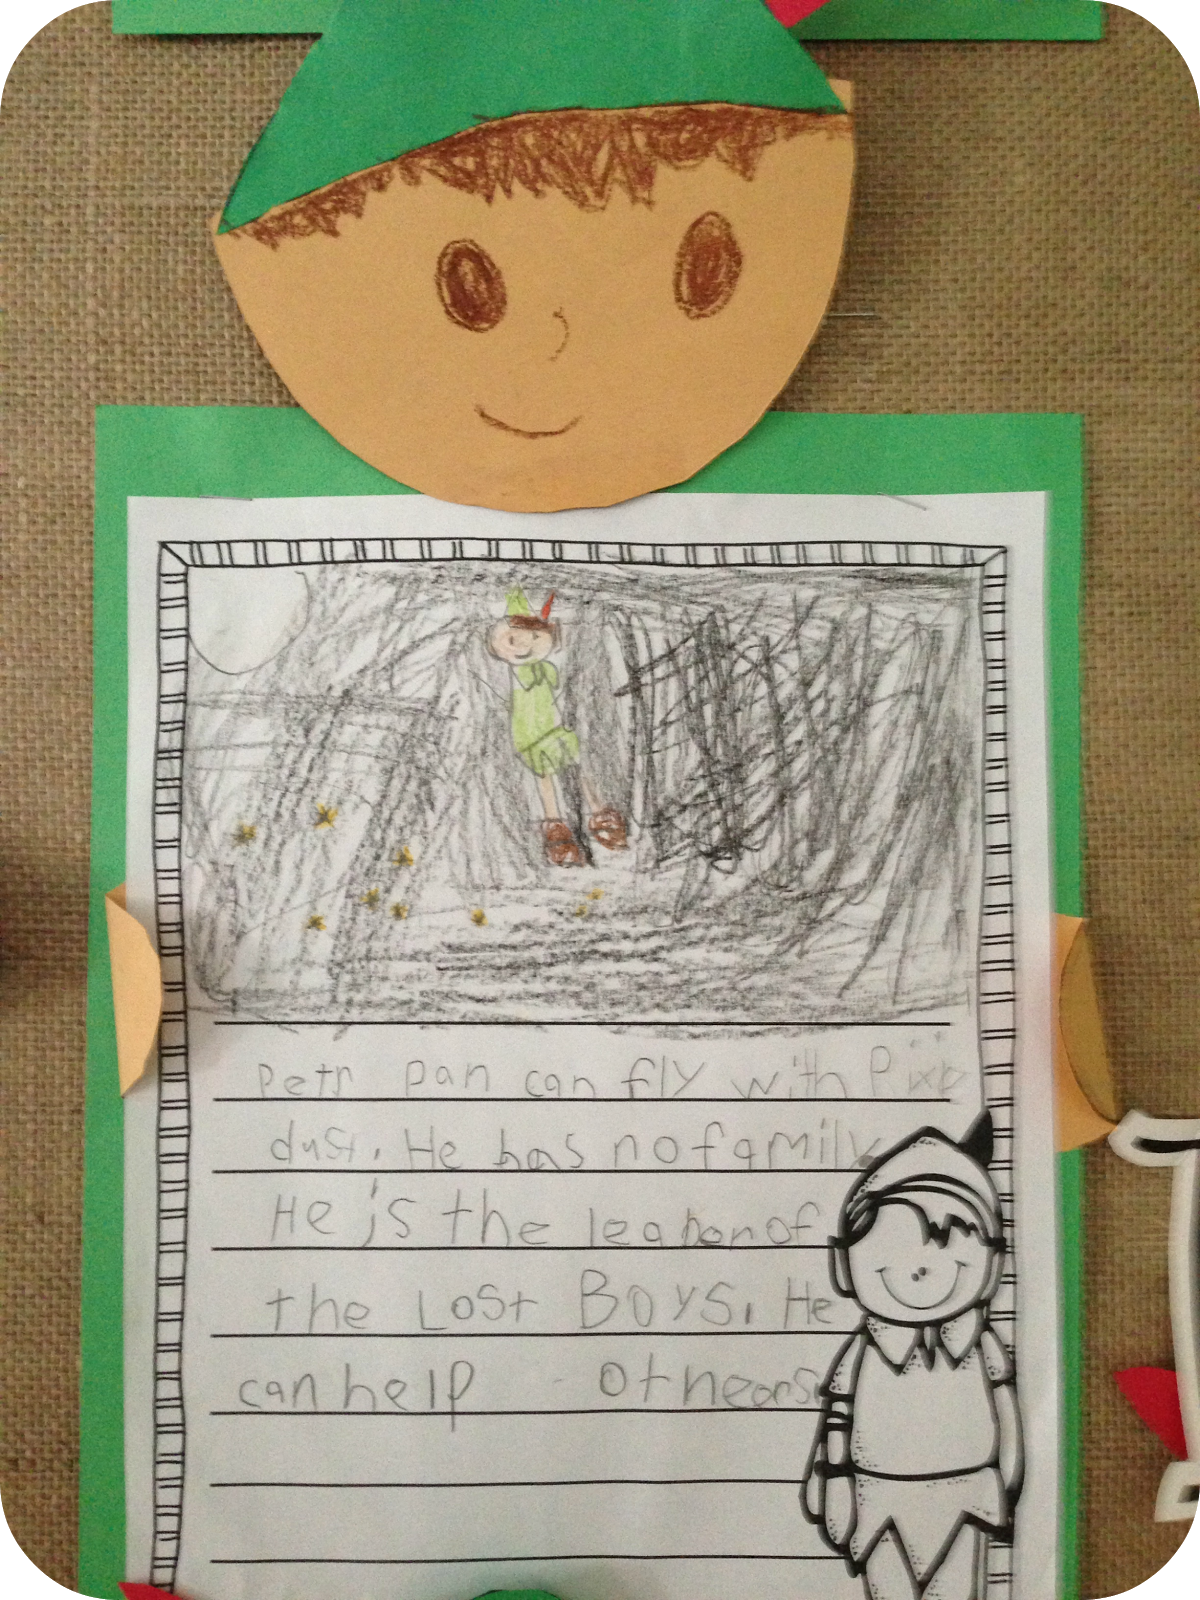 Ideas And Activities To Go With The Reading Of Peter Pan